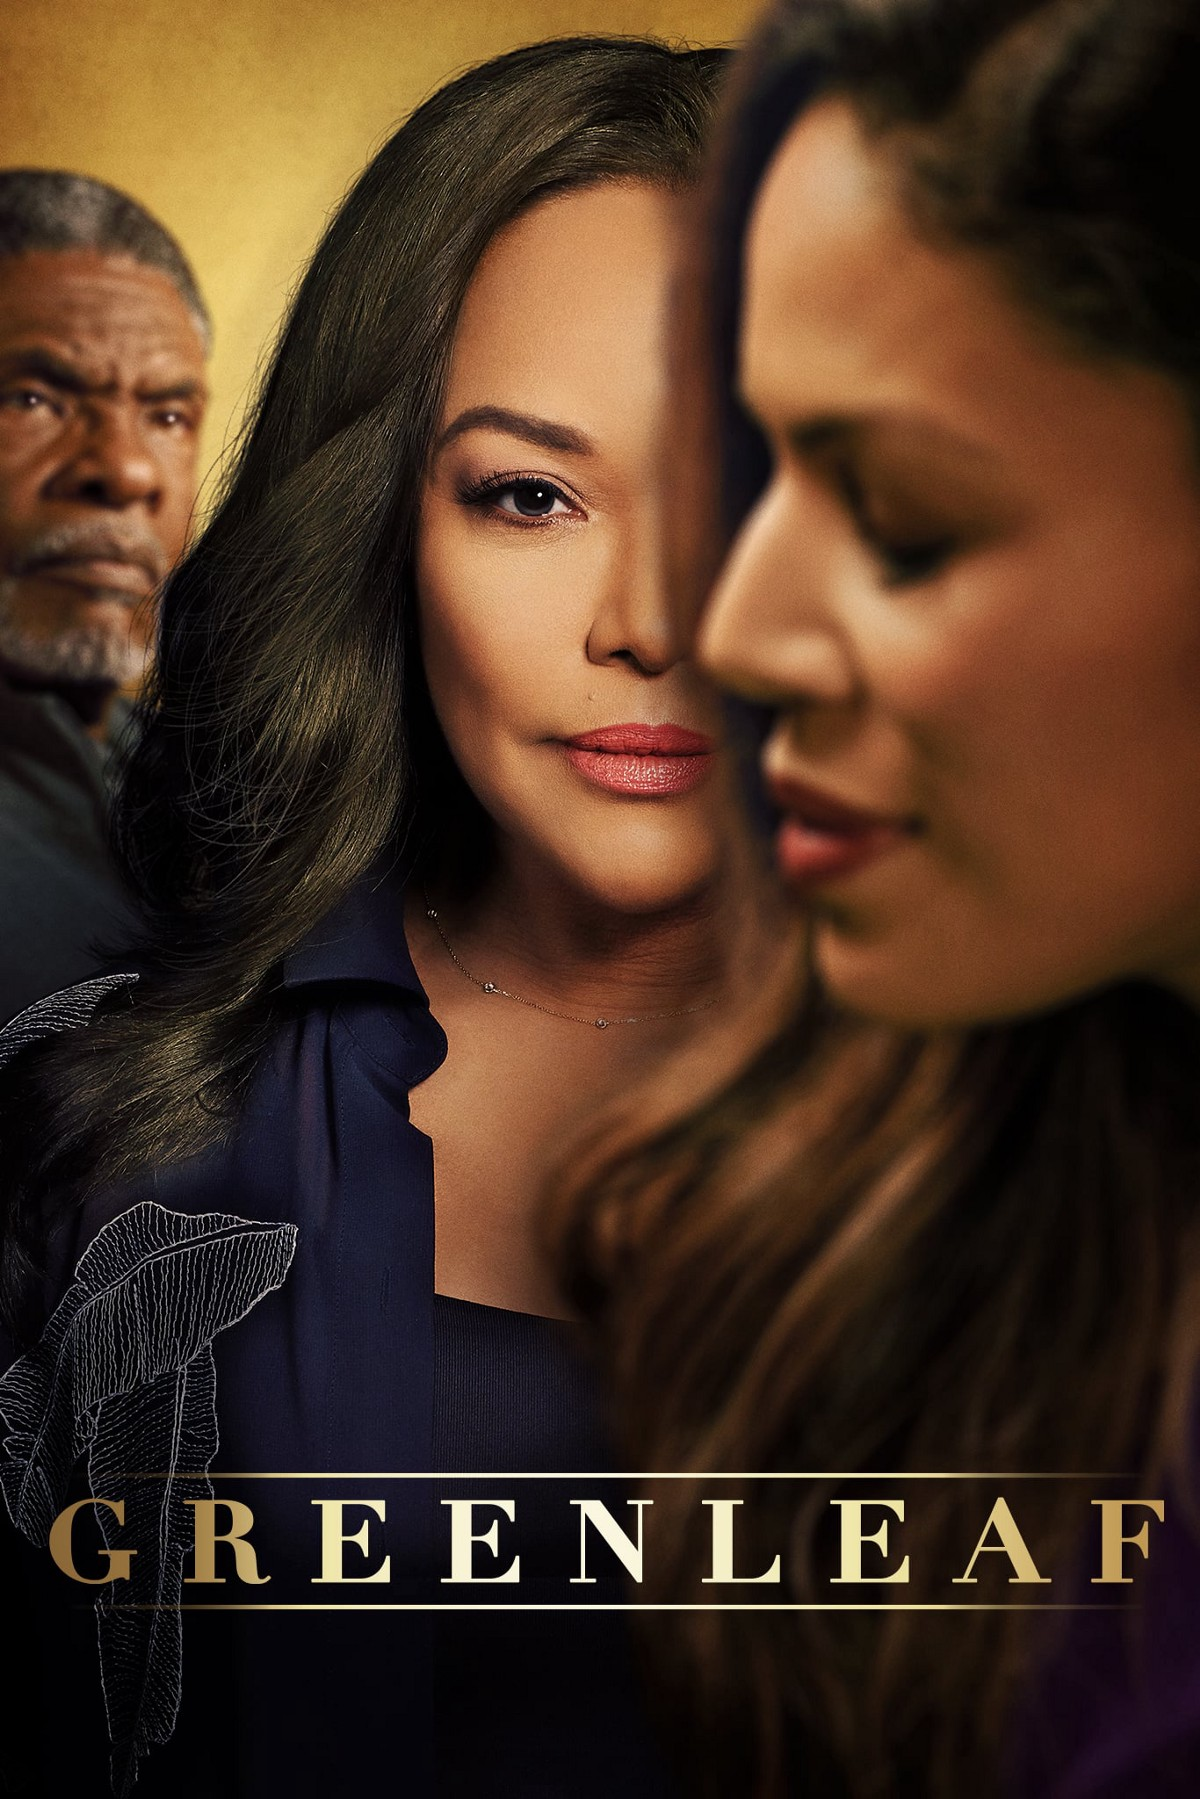 Greenleaf Season 5 Episode 3 : (Full Episodes S5xE3)